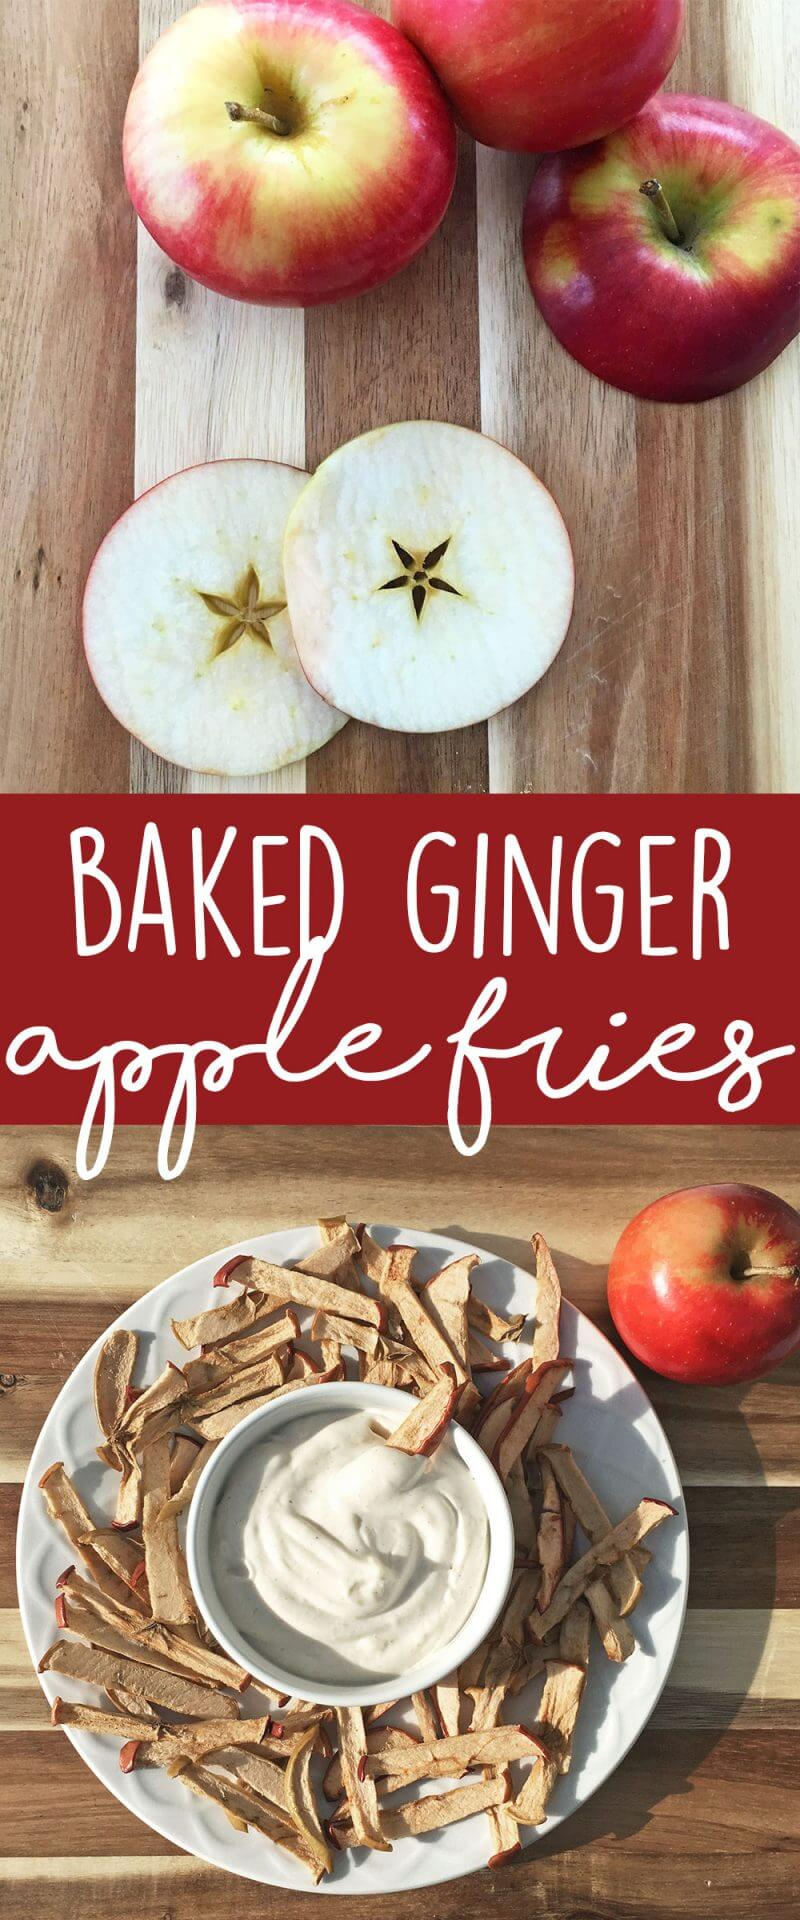 Healthy snack idea and easy to make in batches: Baked Ginger Apple Fries with a cinnamon yogurt dip! Fun and delicious snack for kids AND adults. | karissasvegankitchen.com